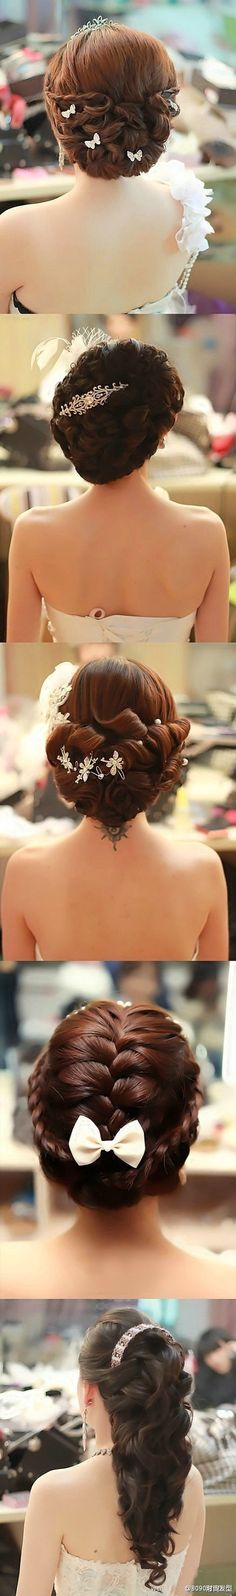 hairstyle for wedding - zzkko.com